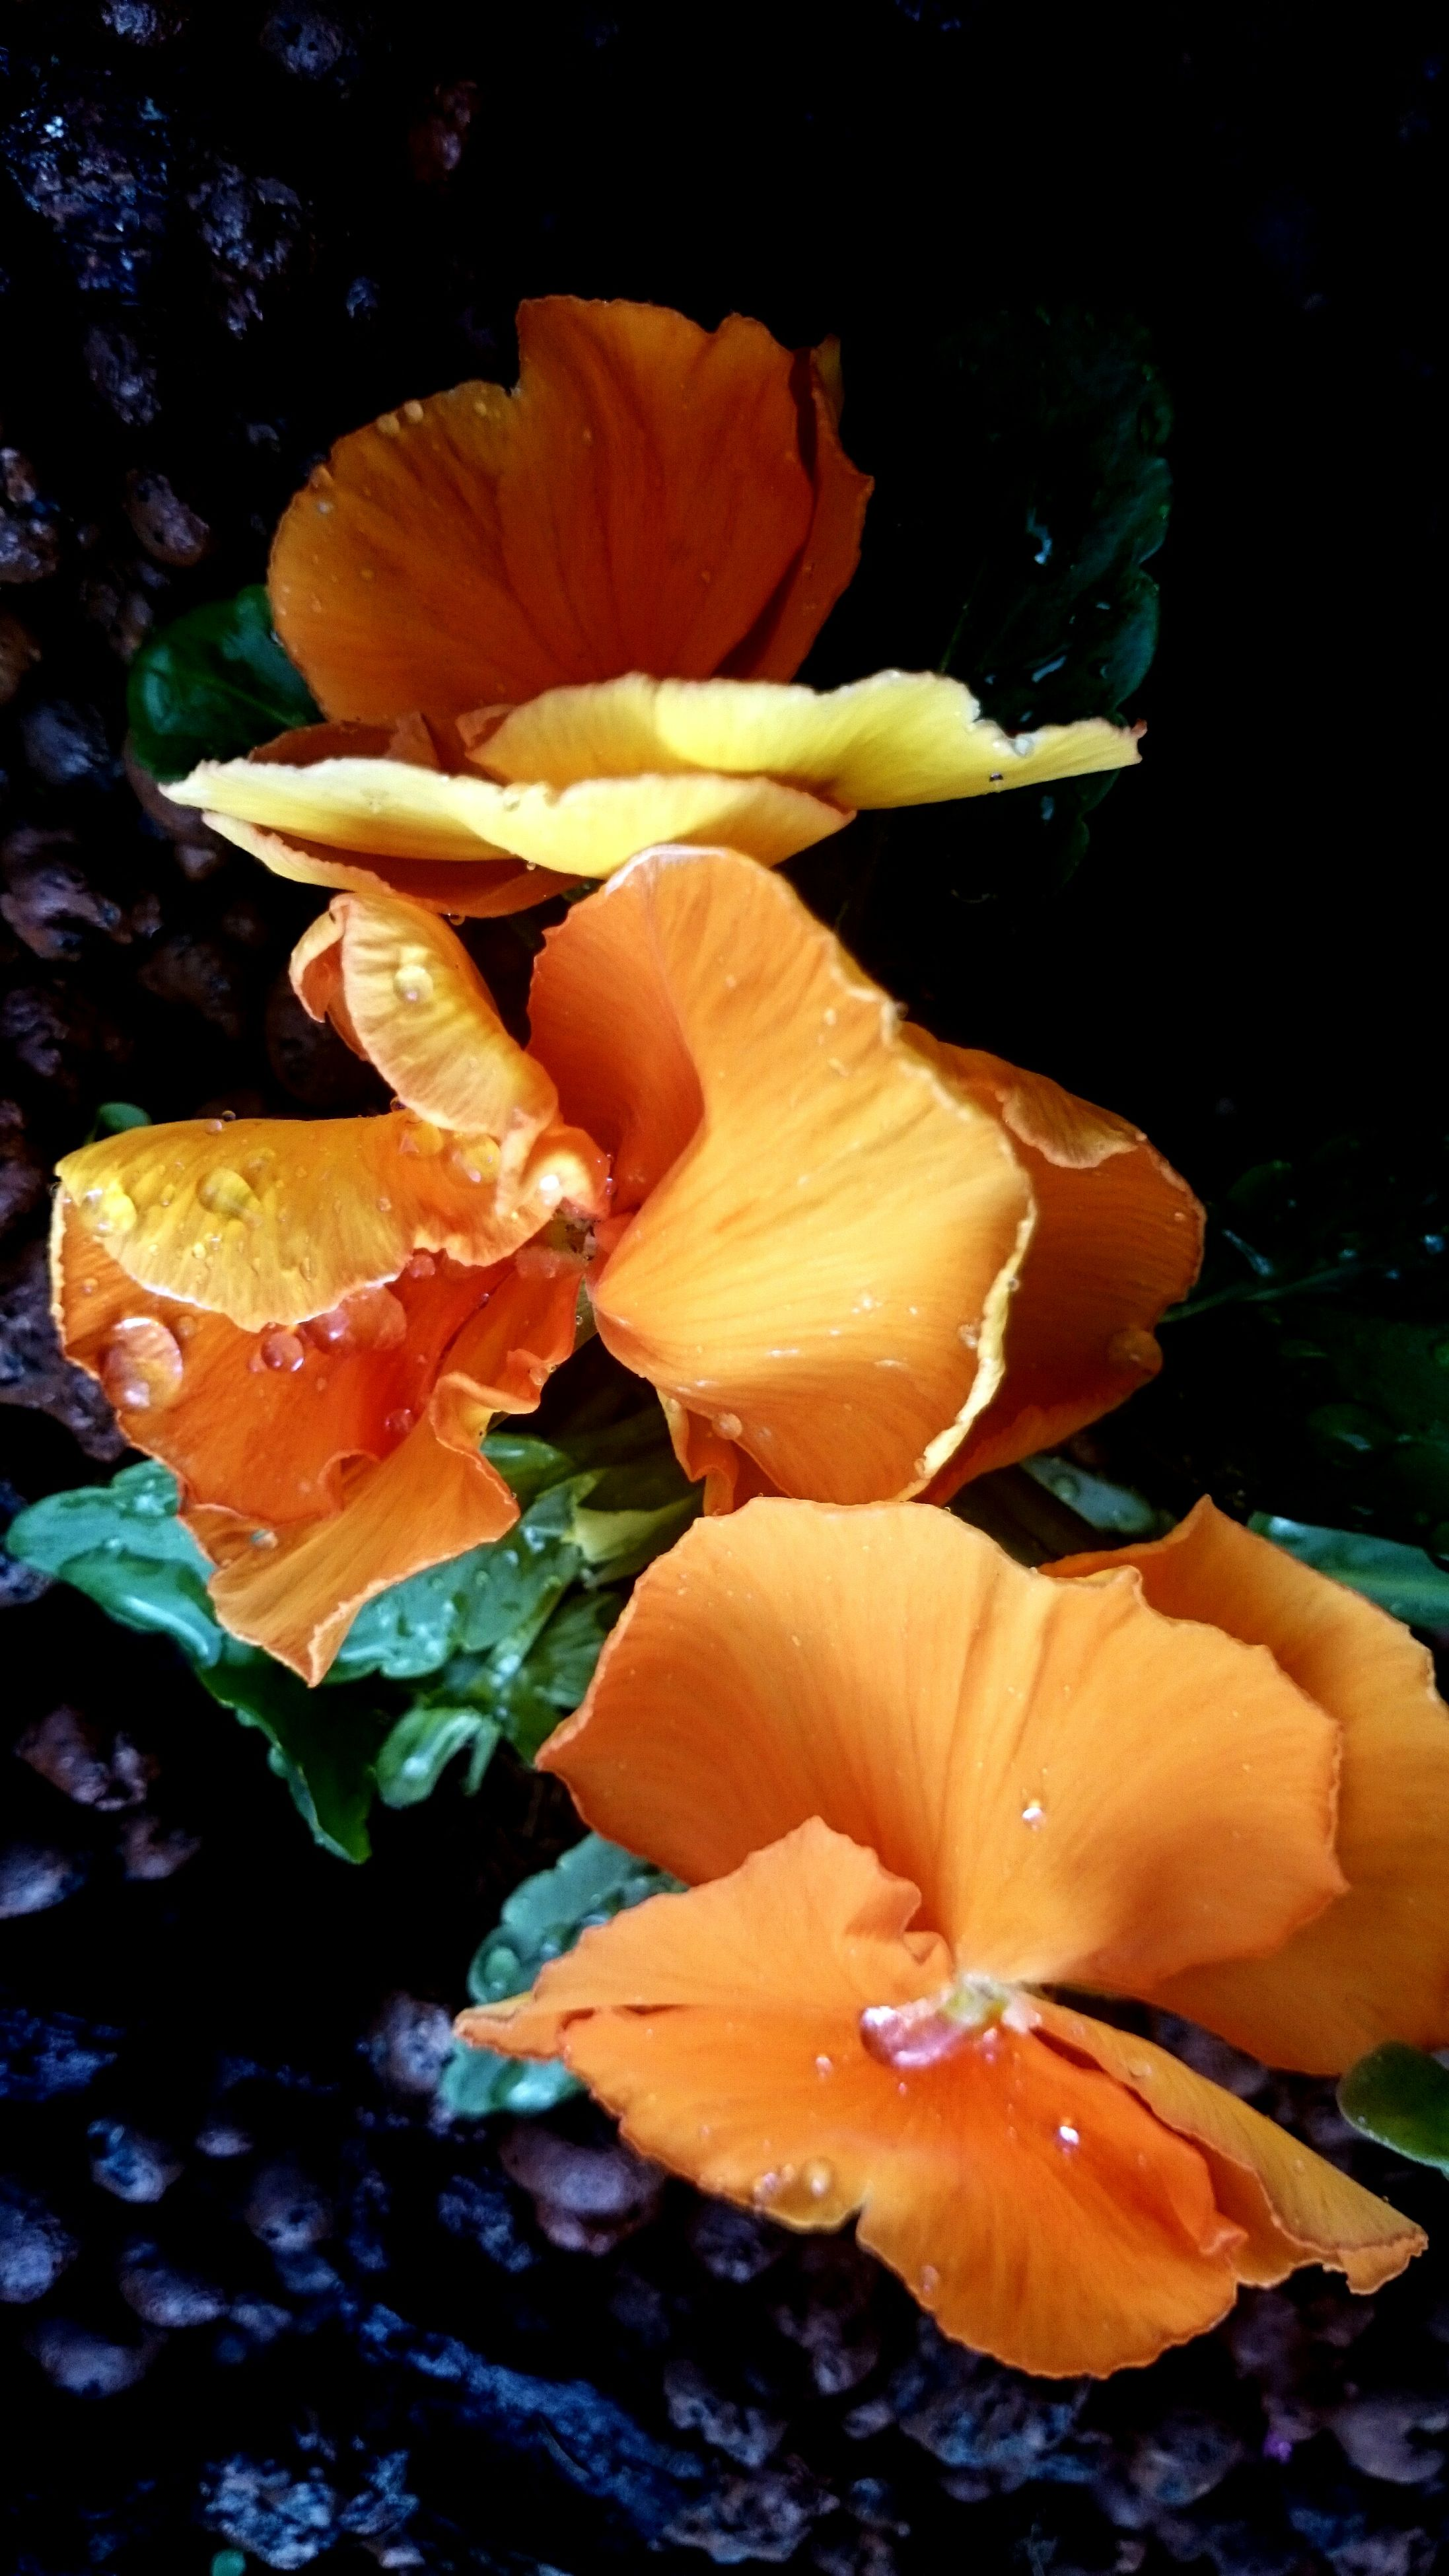 petal, flower, fragility, flower head, freshness, beauty in nature, growth, close-up, nature, orange color, leaf, blooming, plant, season, focus on foreground, single flower, yellow, rose - flower, in bloom, wet